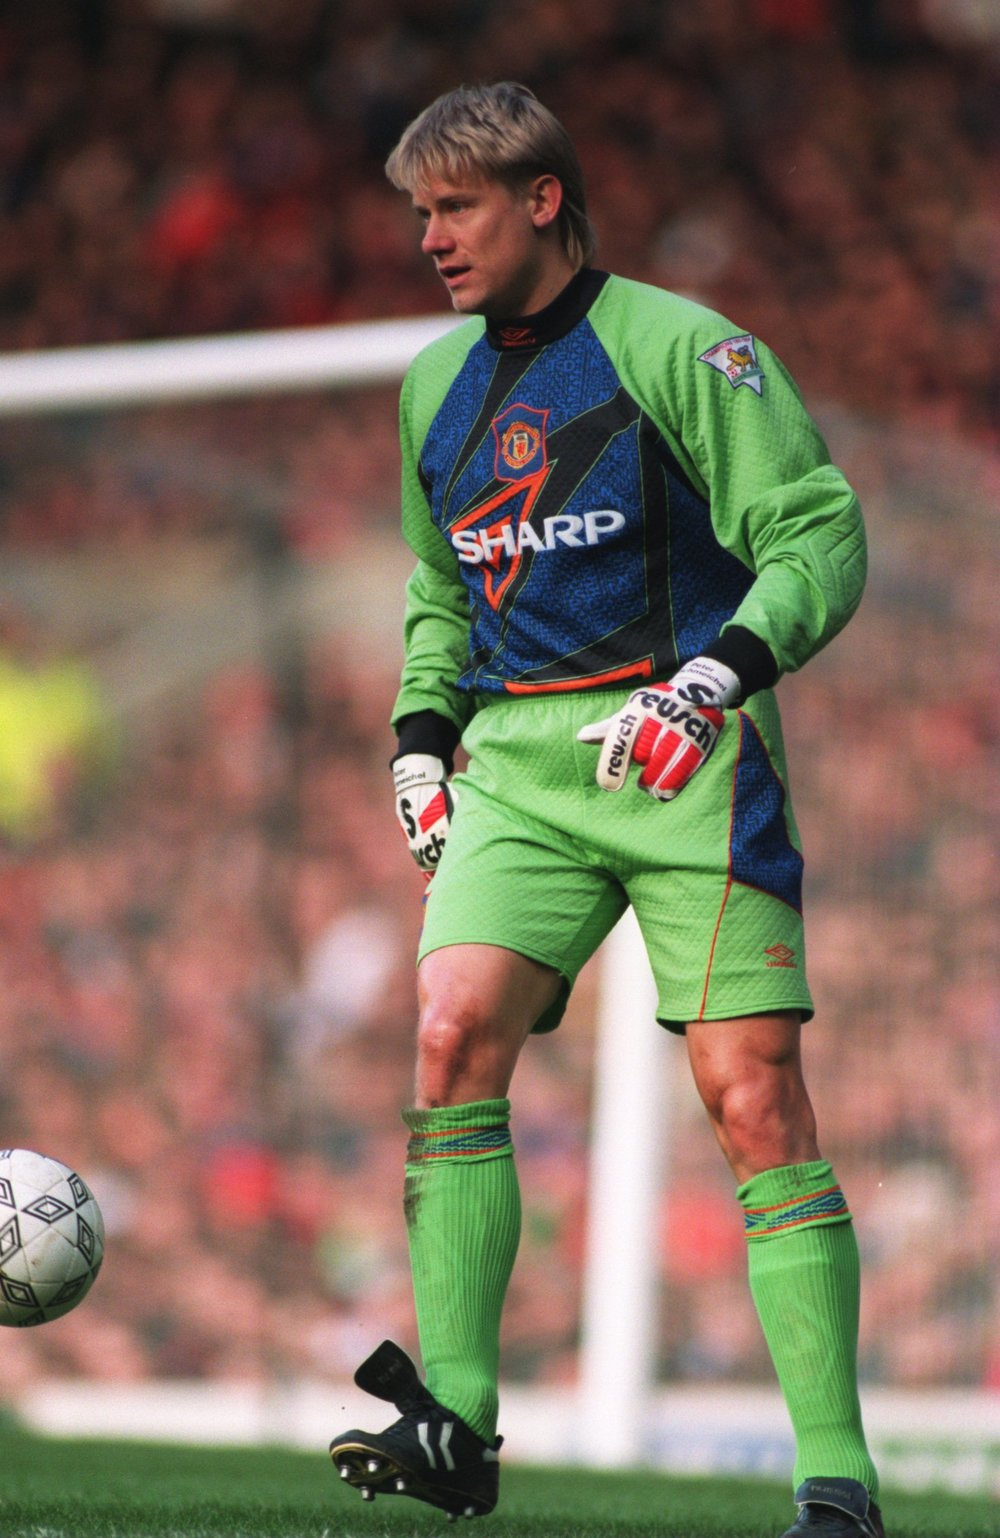 Peter Schmeichel, goalkeeper for Manchester United (1991-1999) and Denmark's National Team (1987-2001)